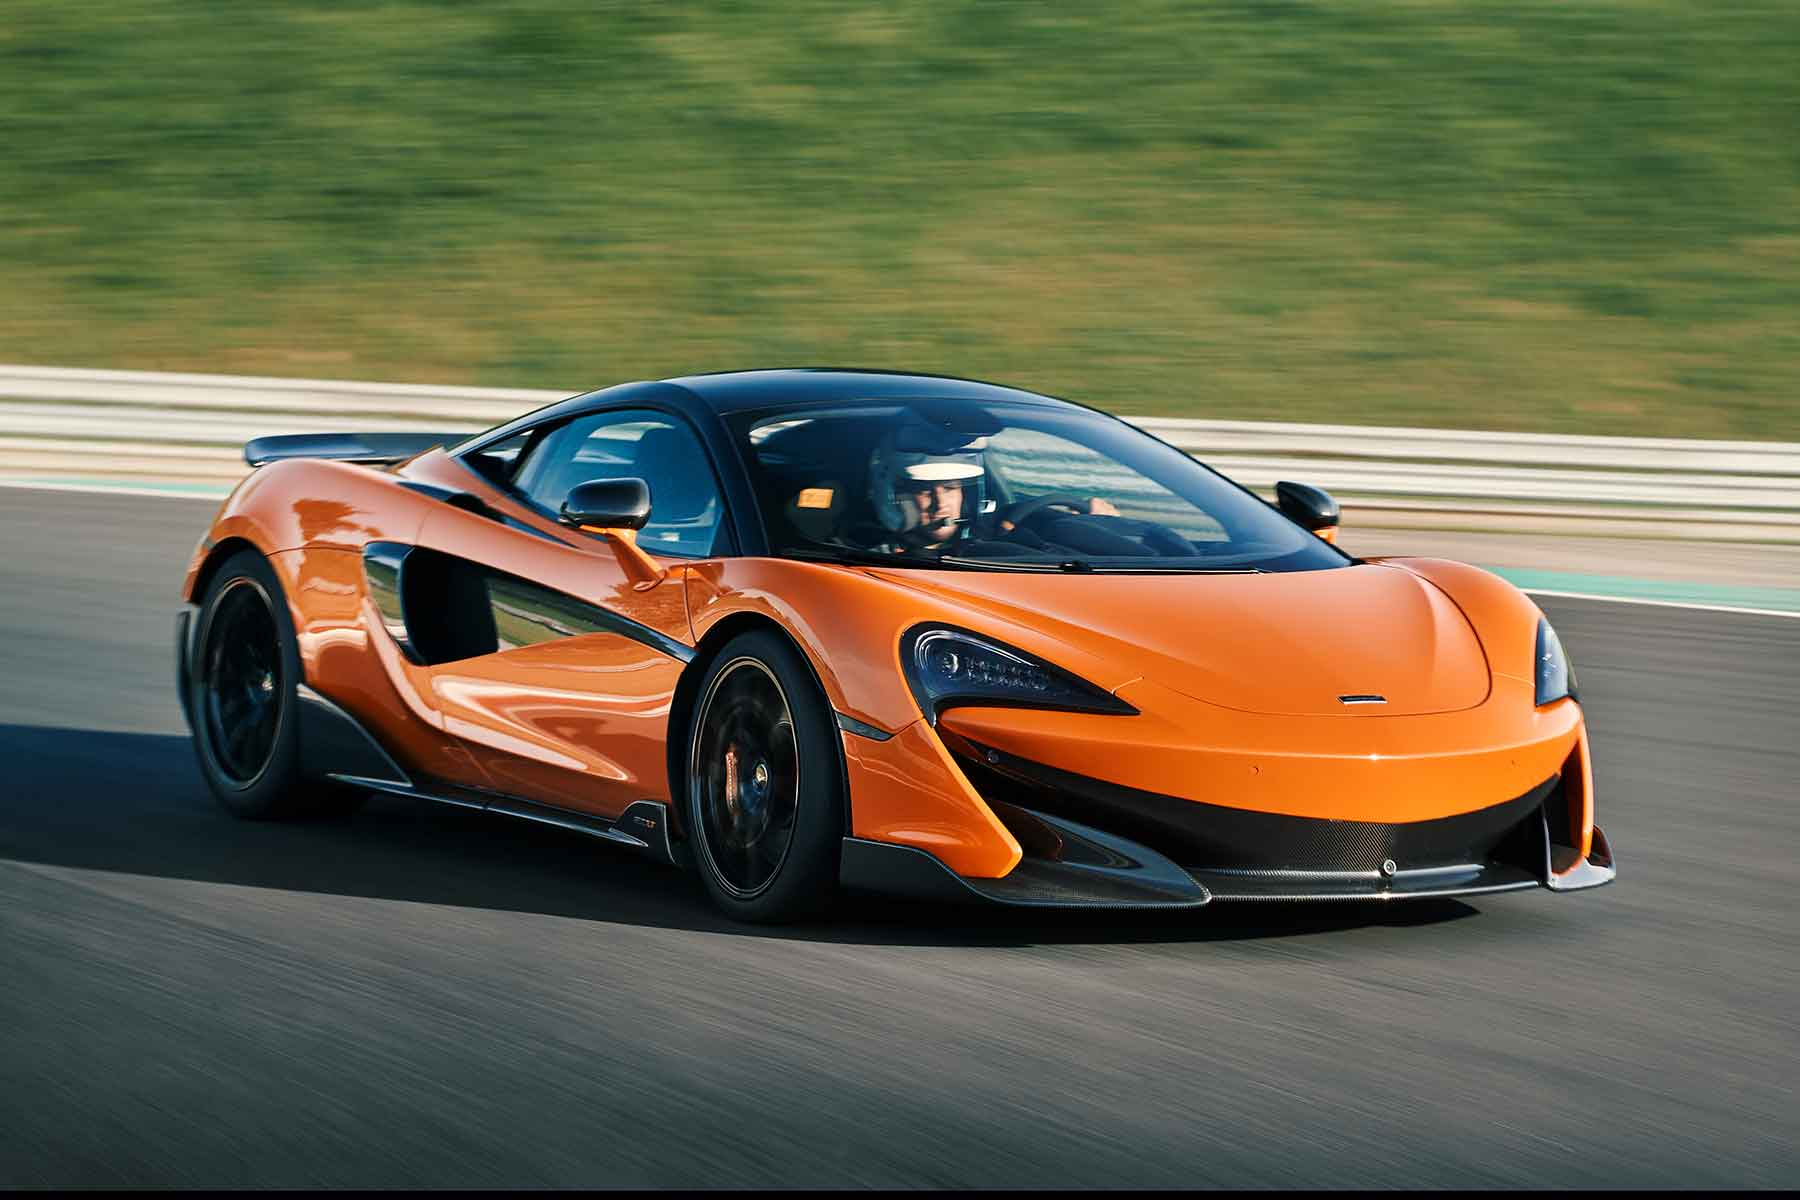 mclaren 600lt review flat out in the best driver s car of 2018. Black Bedroom Furniture Sets. Home Design Ideas